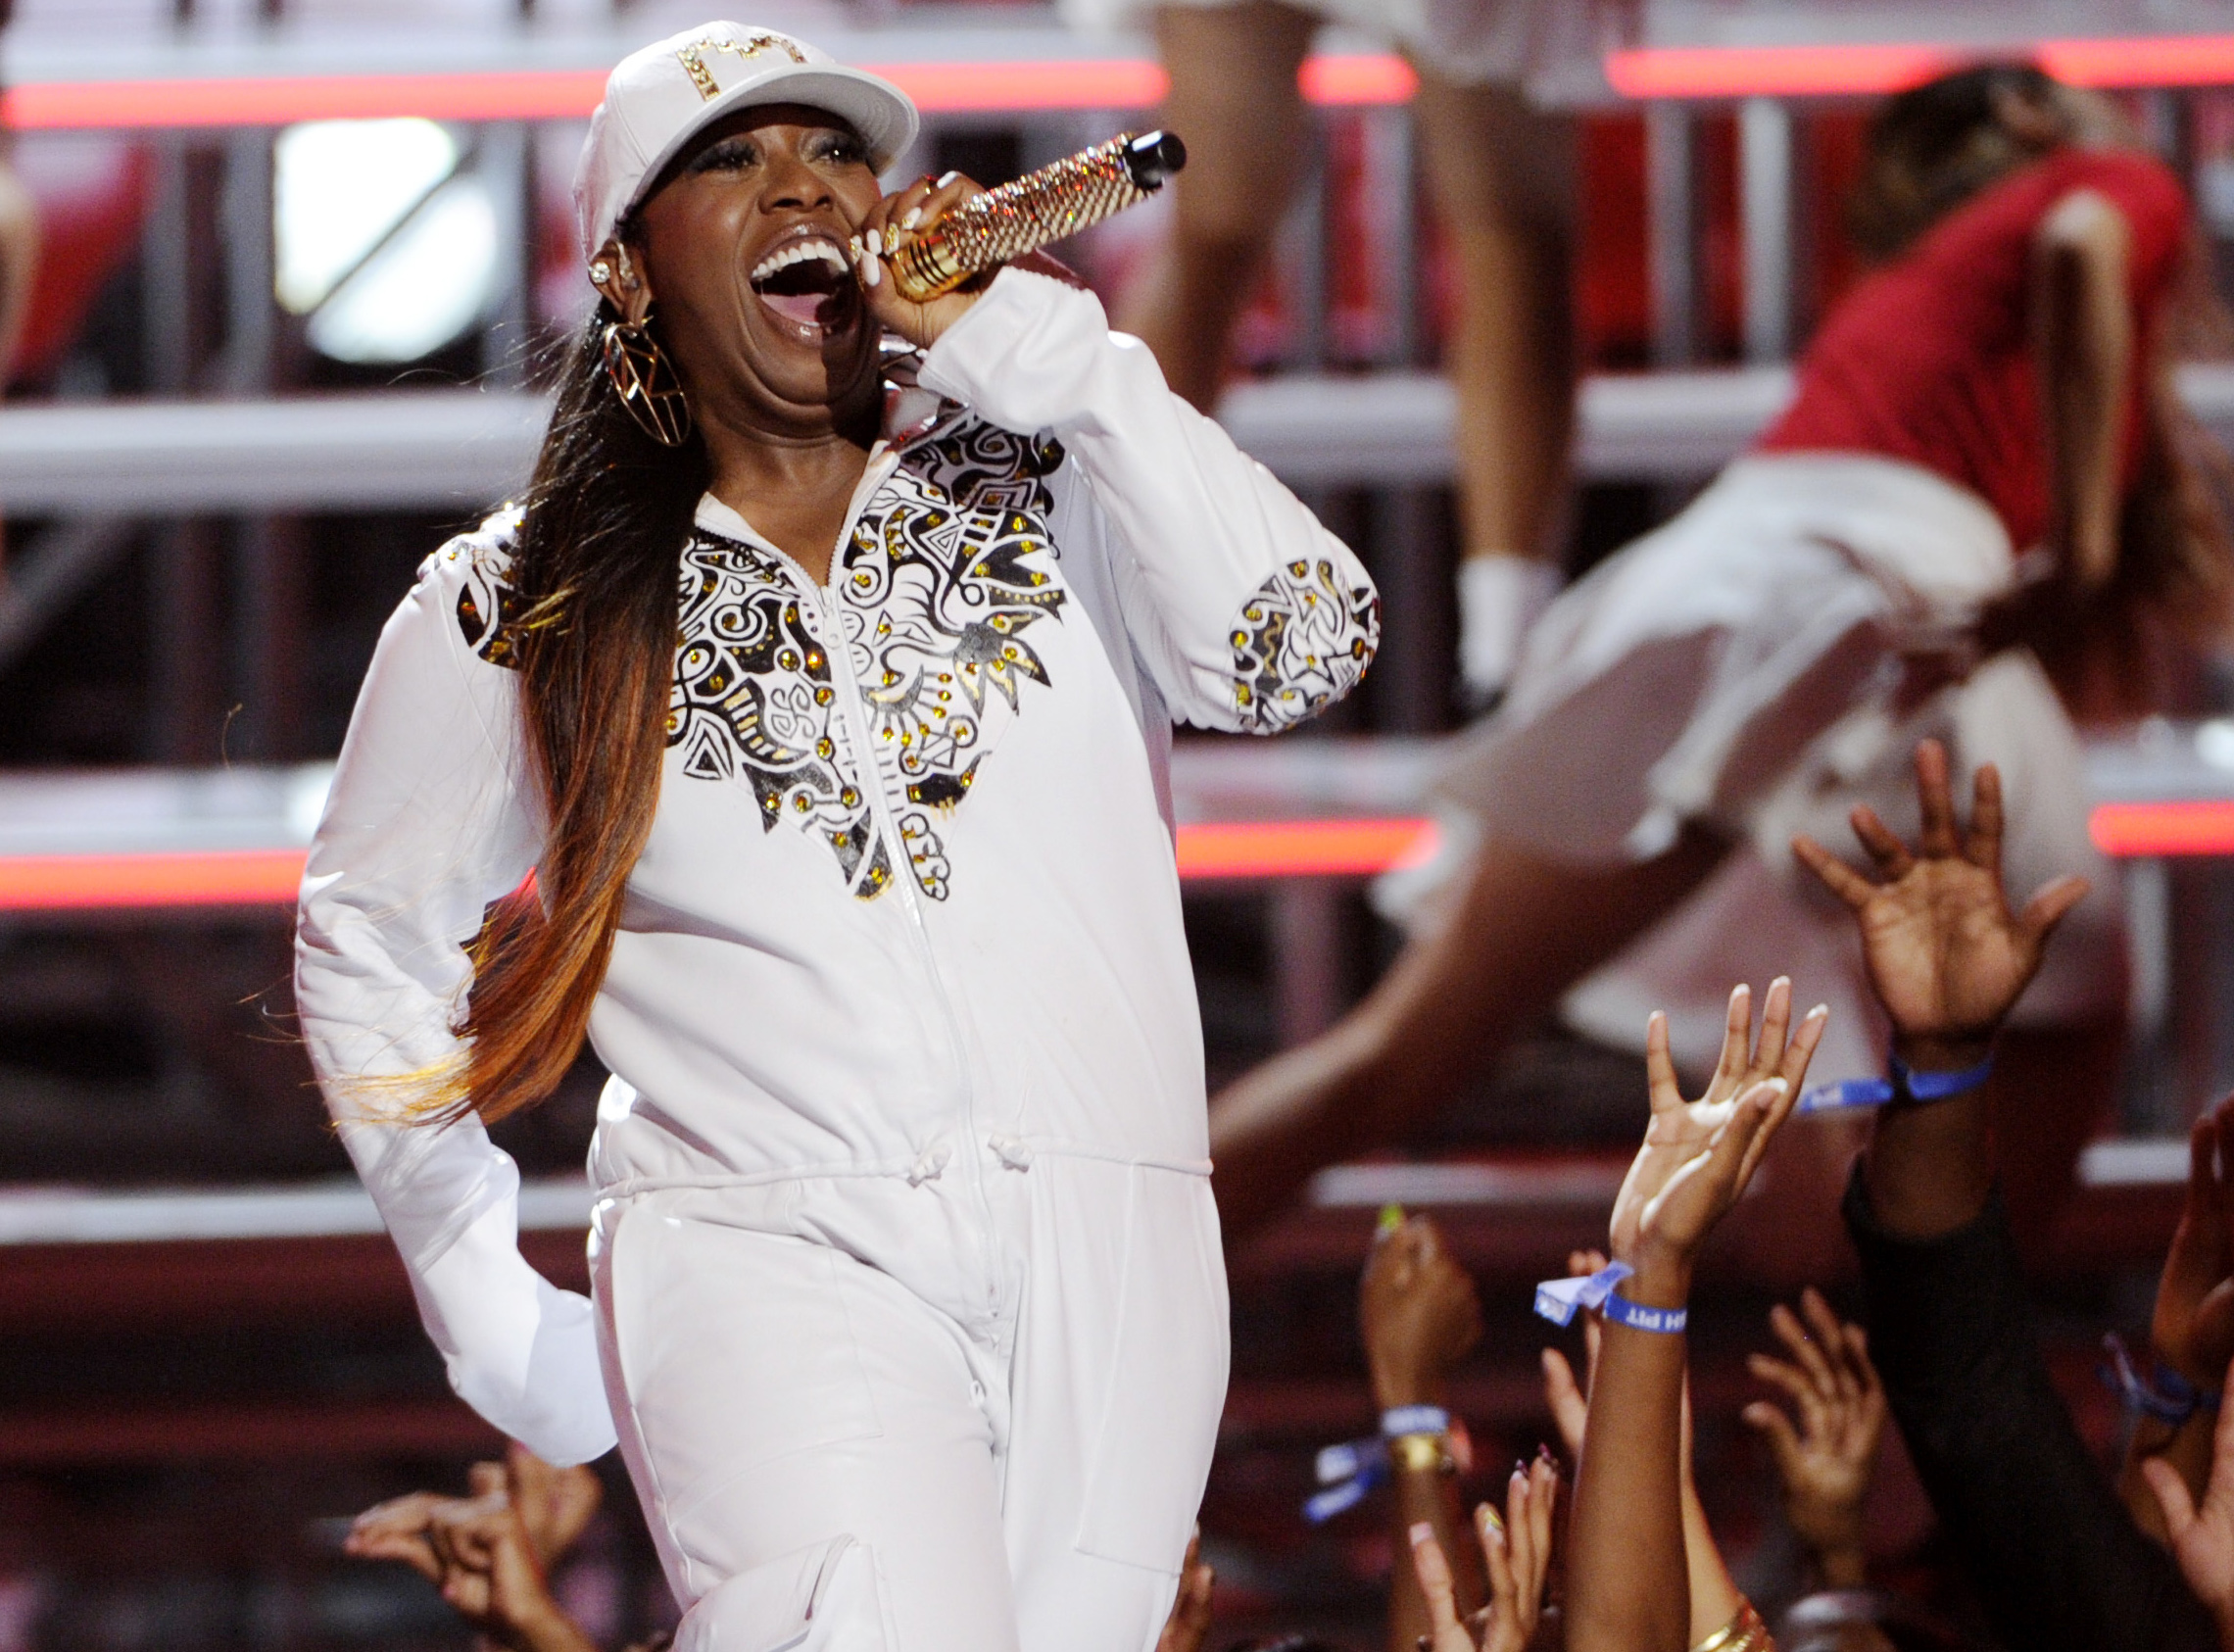 Missy Elliott performing at the BET Awards in 2014.